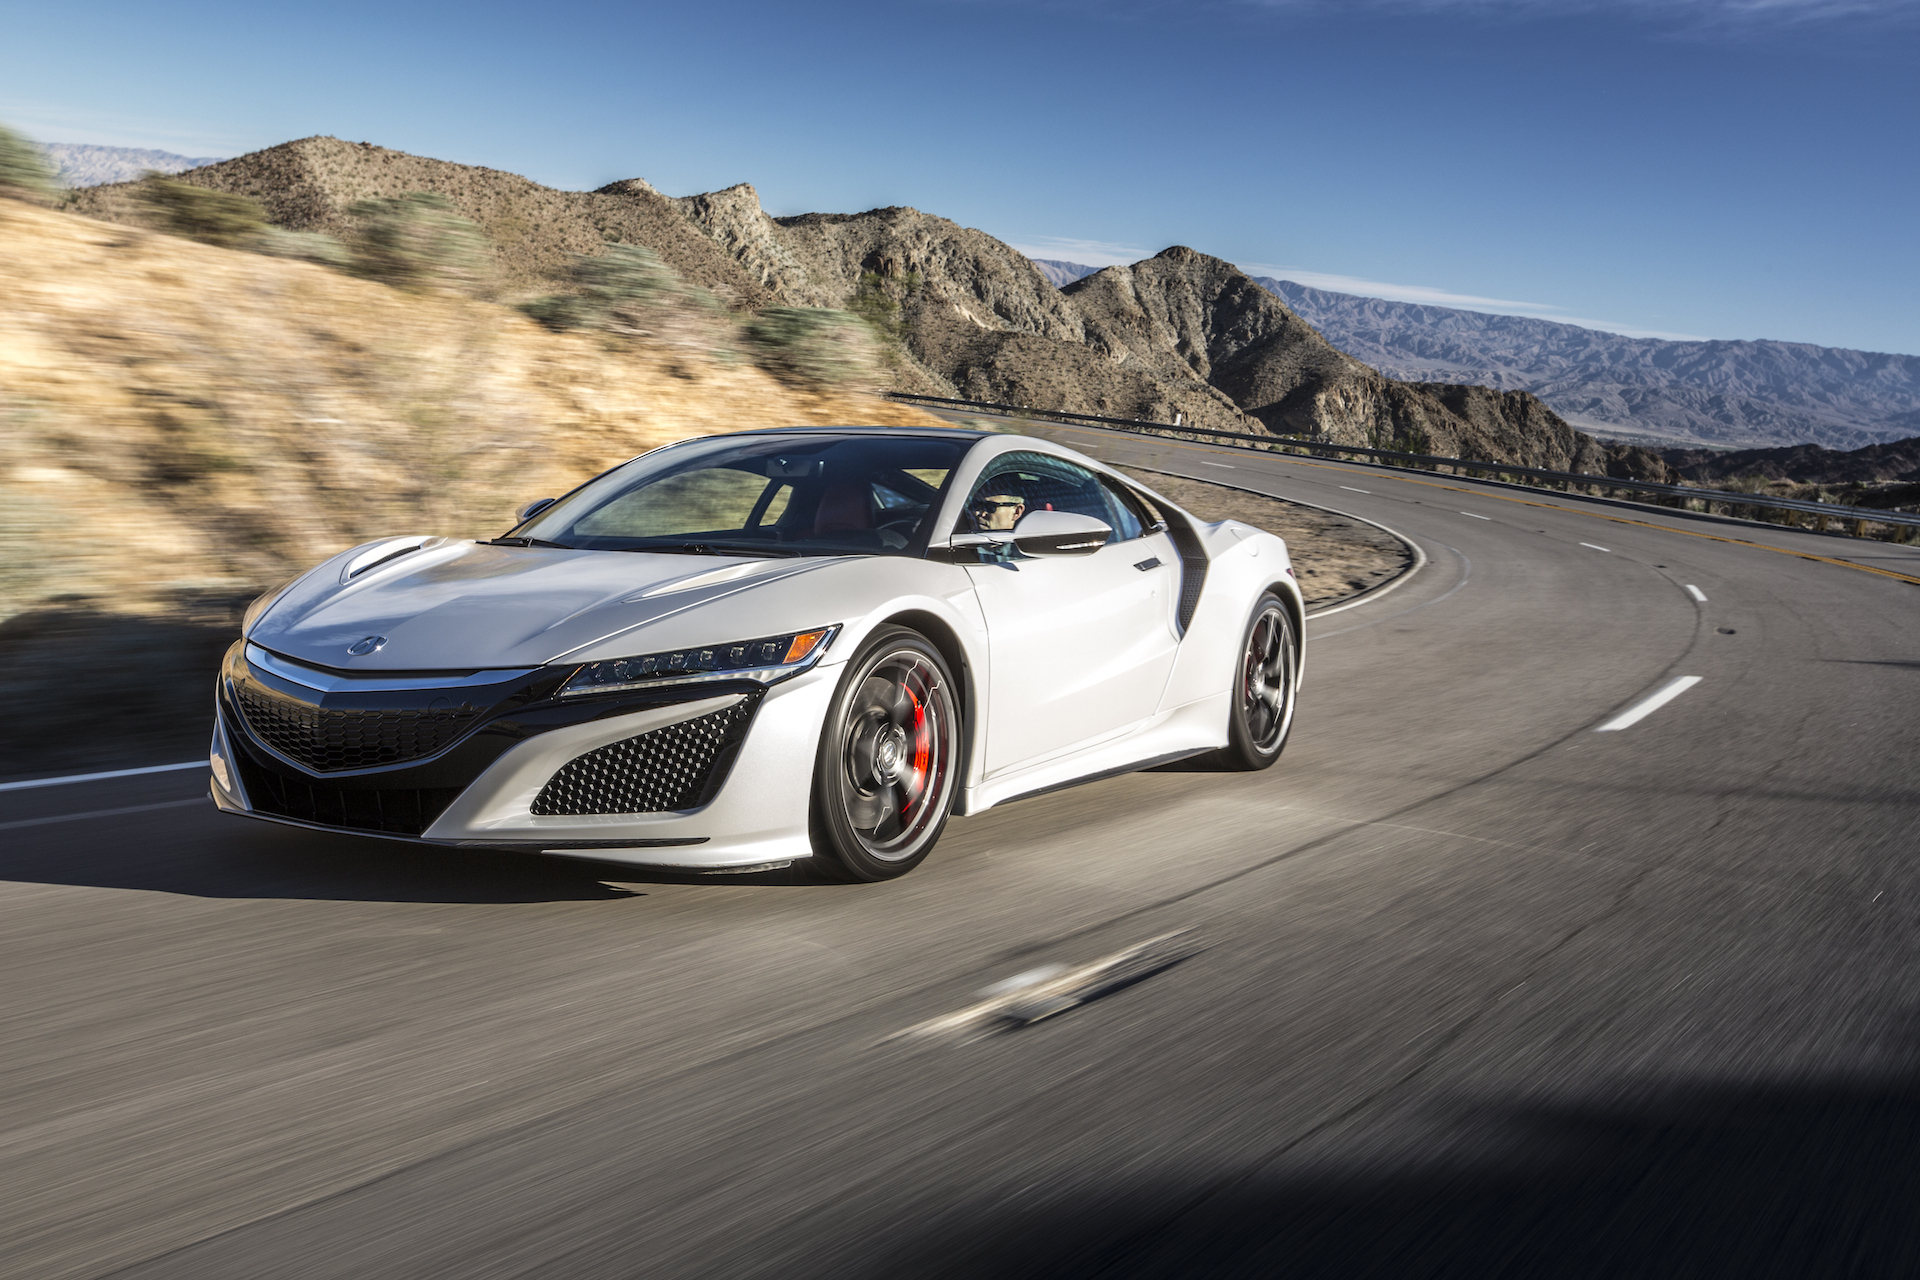 2017 Acura NSX Review, Ratings, Specs, Prices, and Photos - The Car Connection